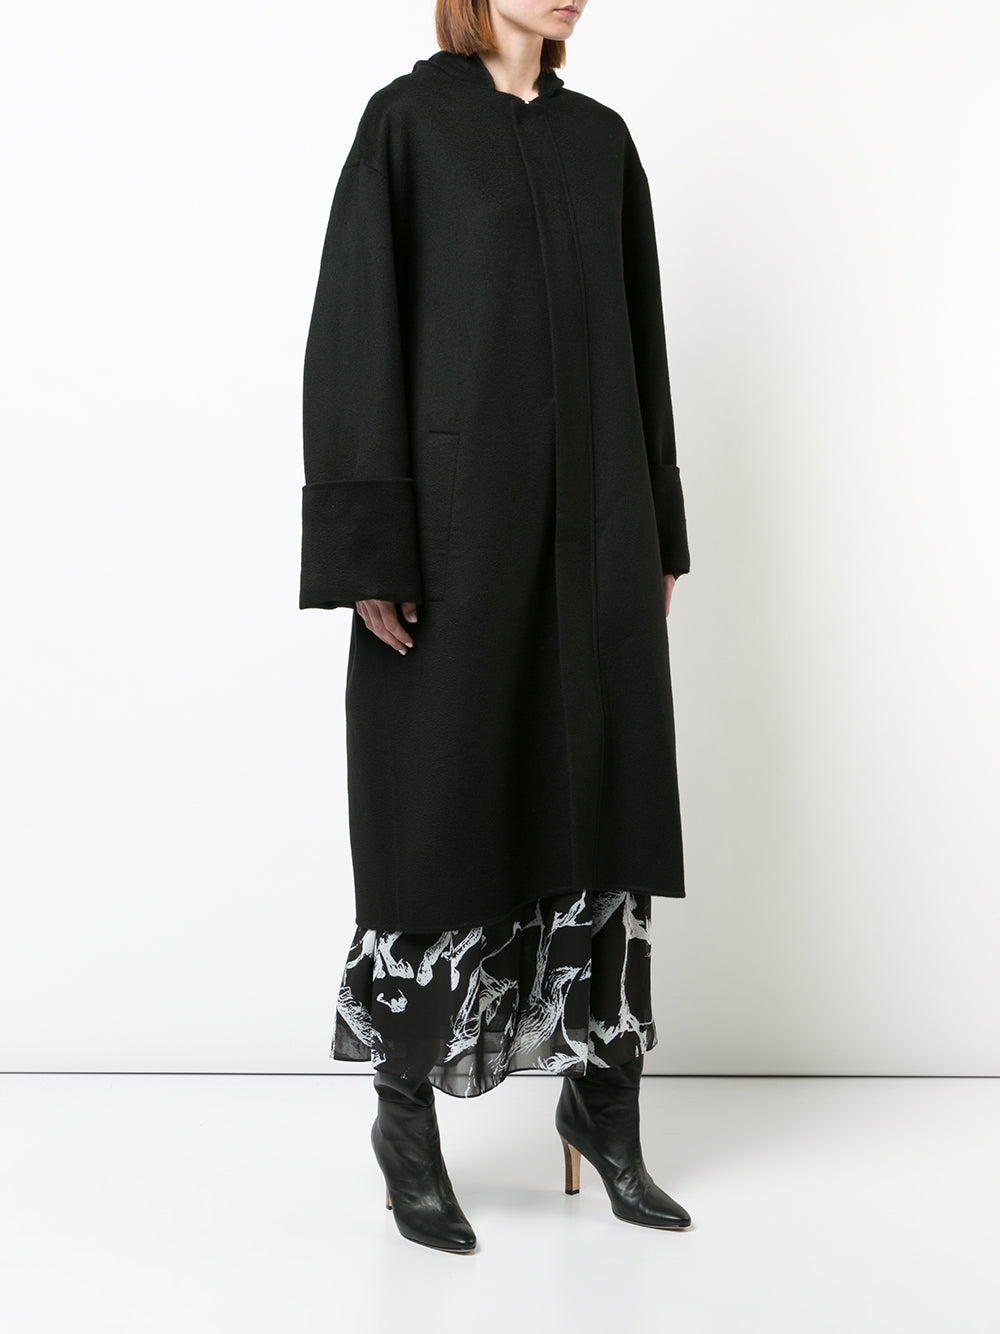 HOODED COAT IN ZIBELLINE CASHMERE